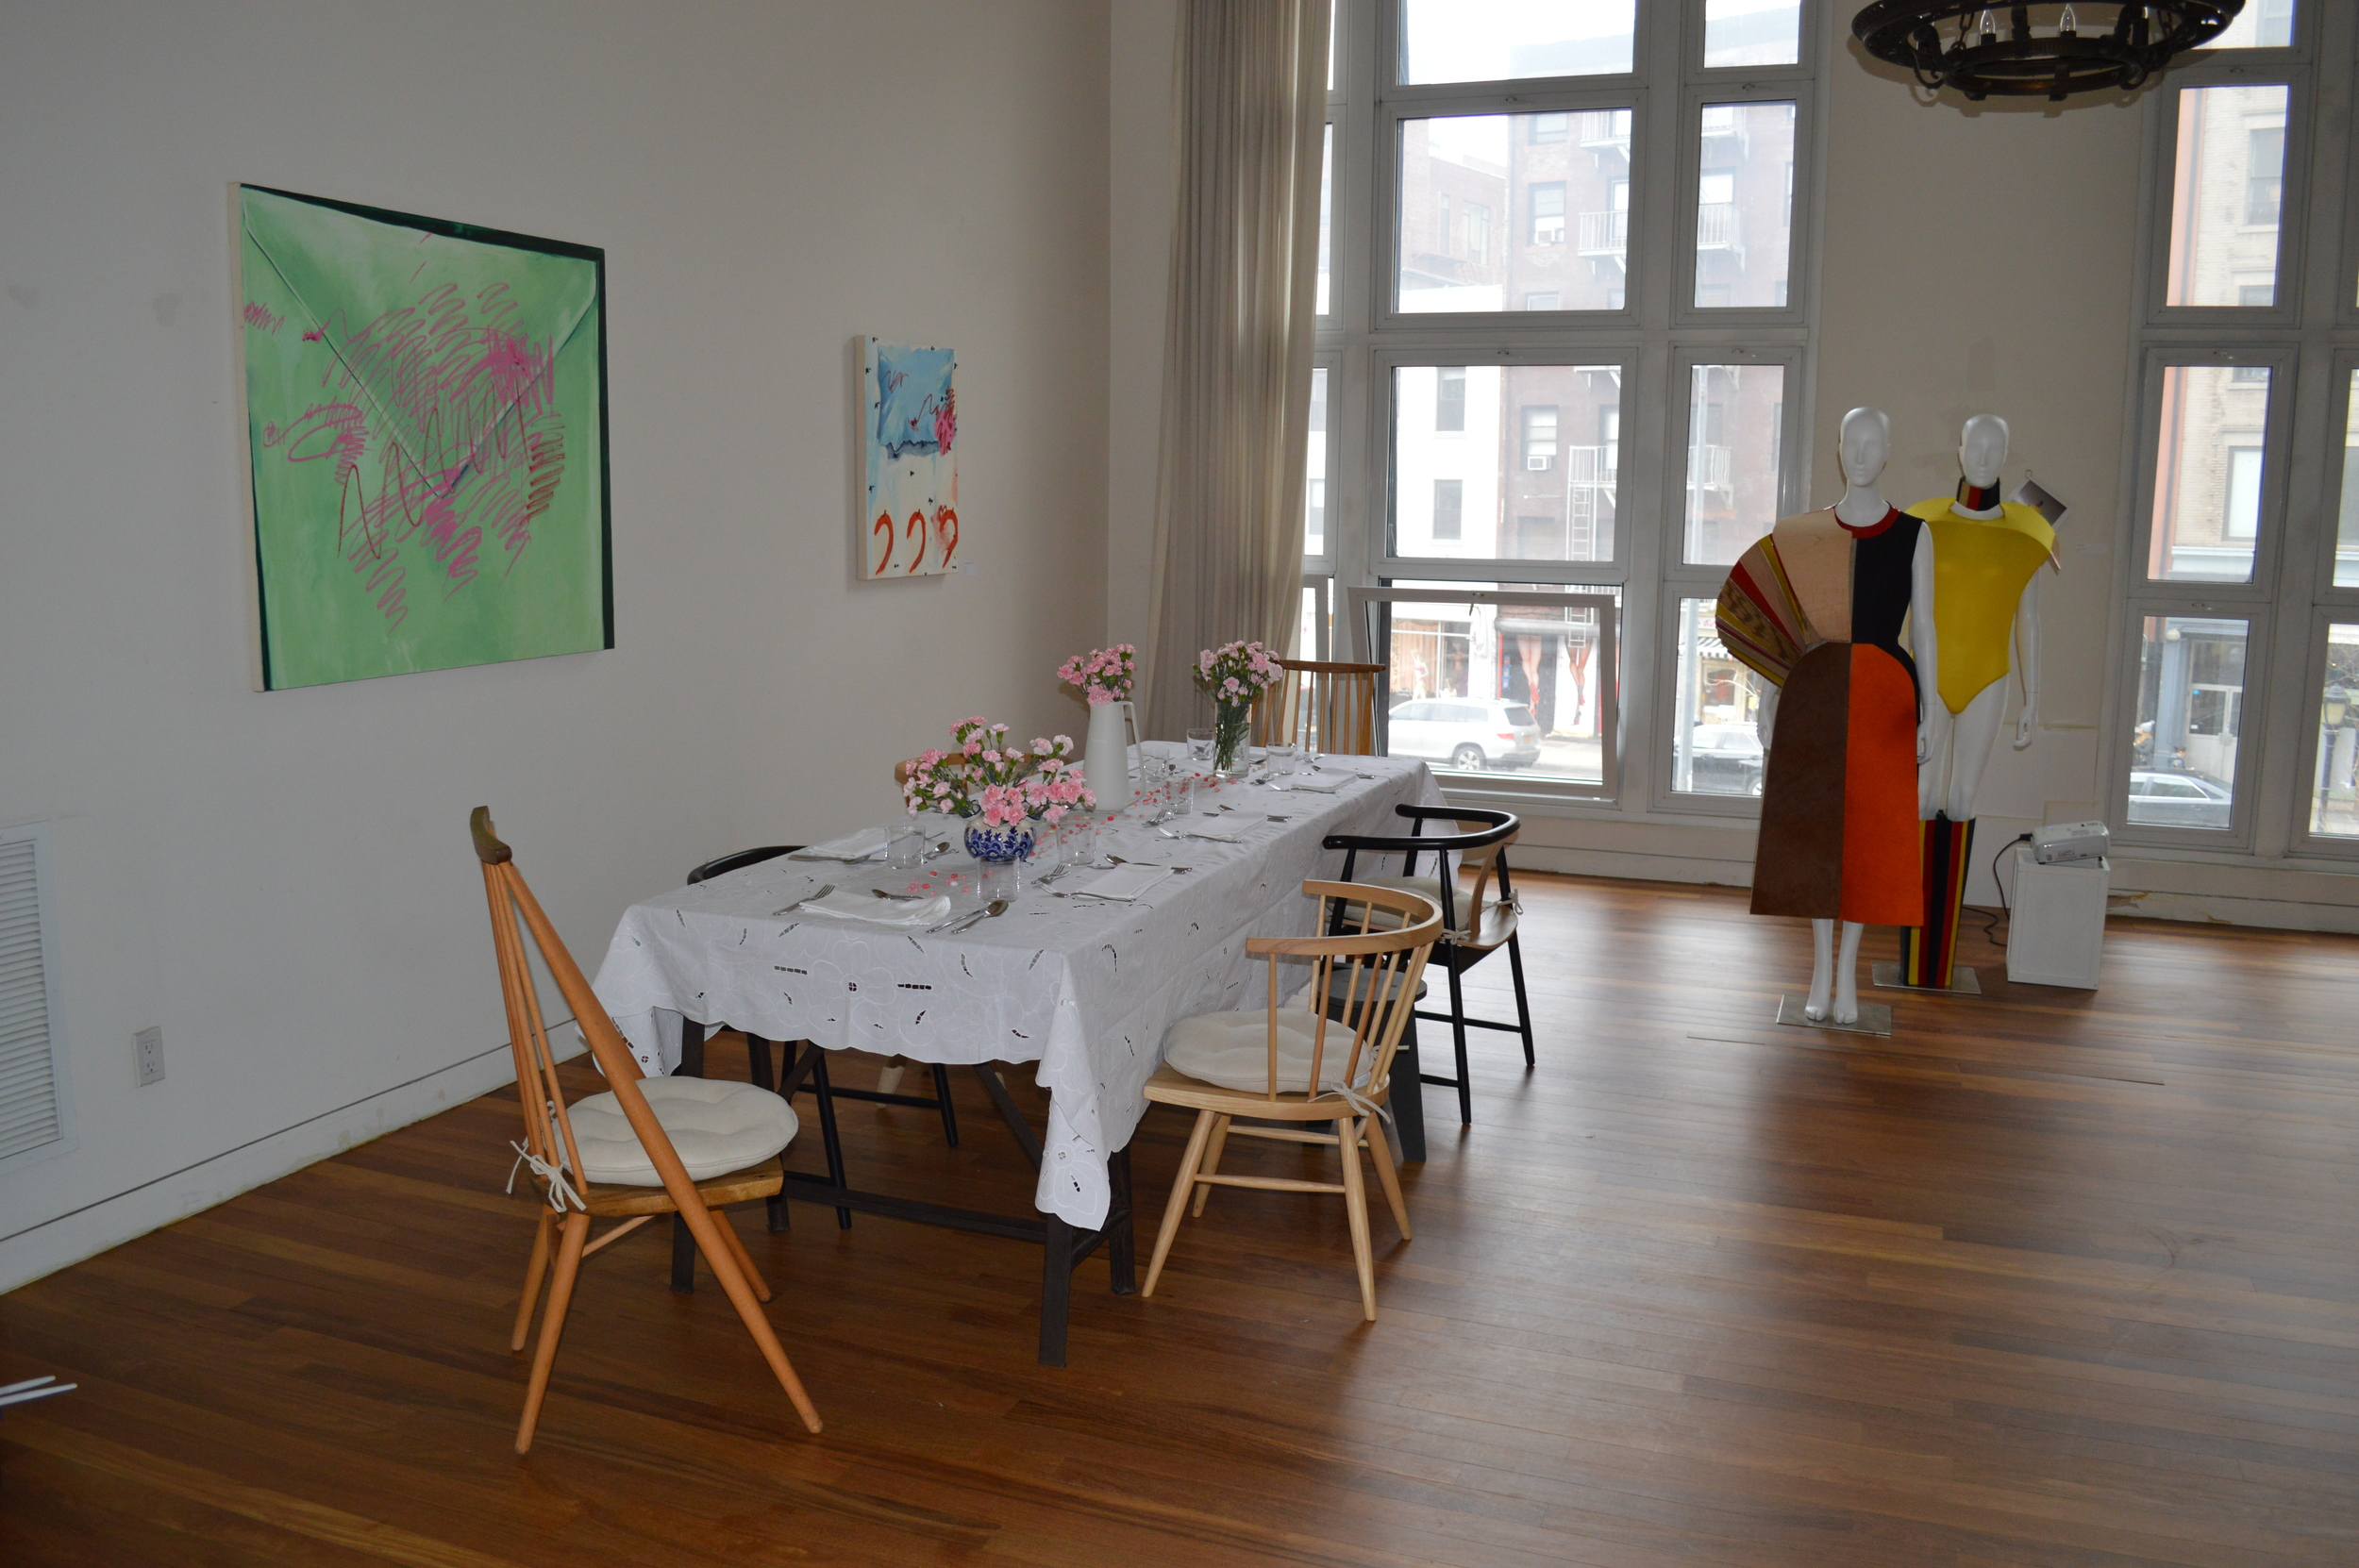 The exhibition space at MISS: Salon in SoHo -- and the setting for this afternoon's Victory Club luncheon